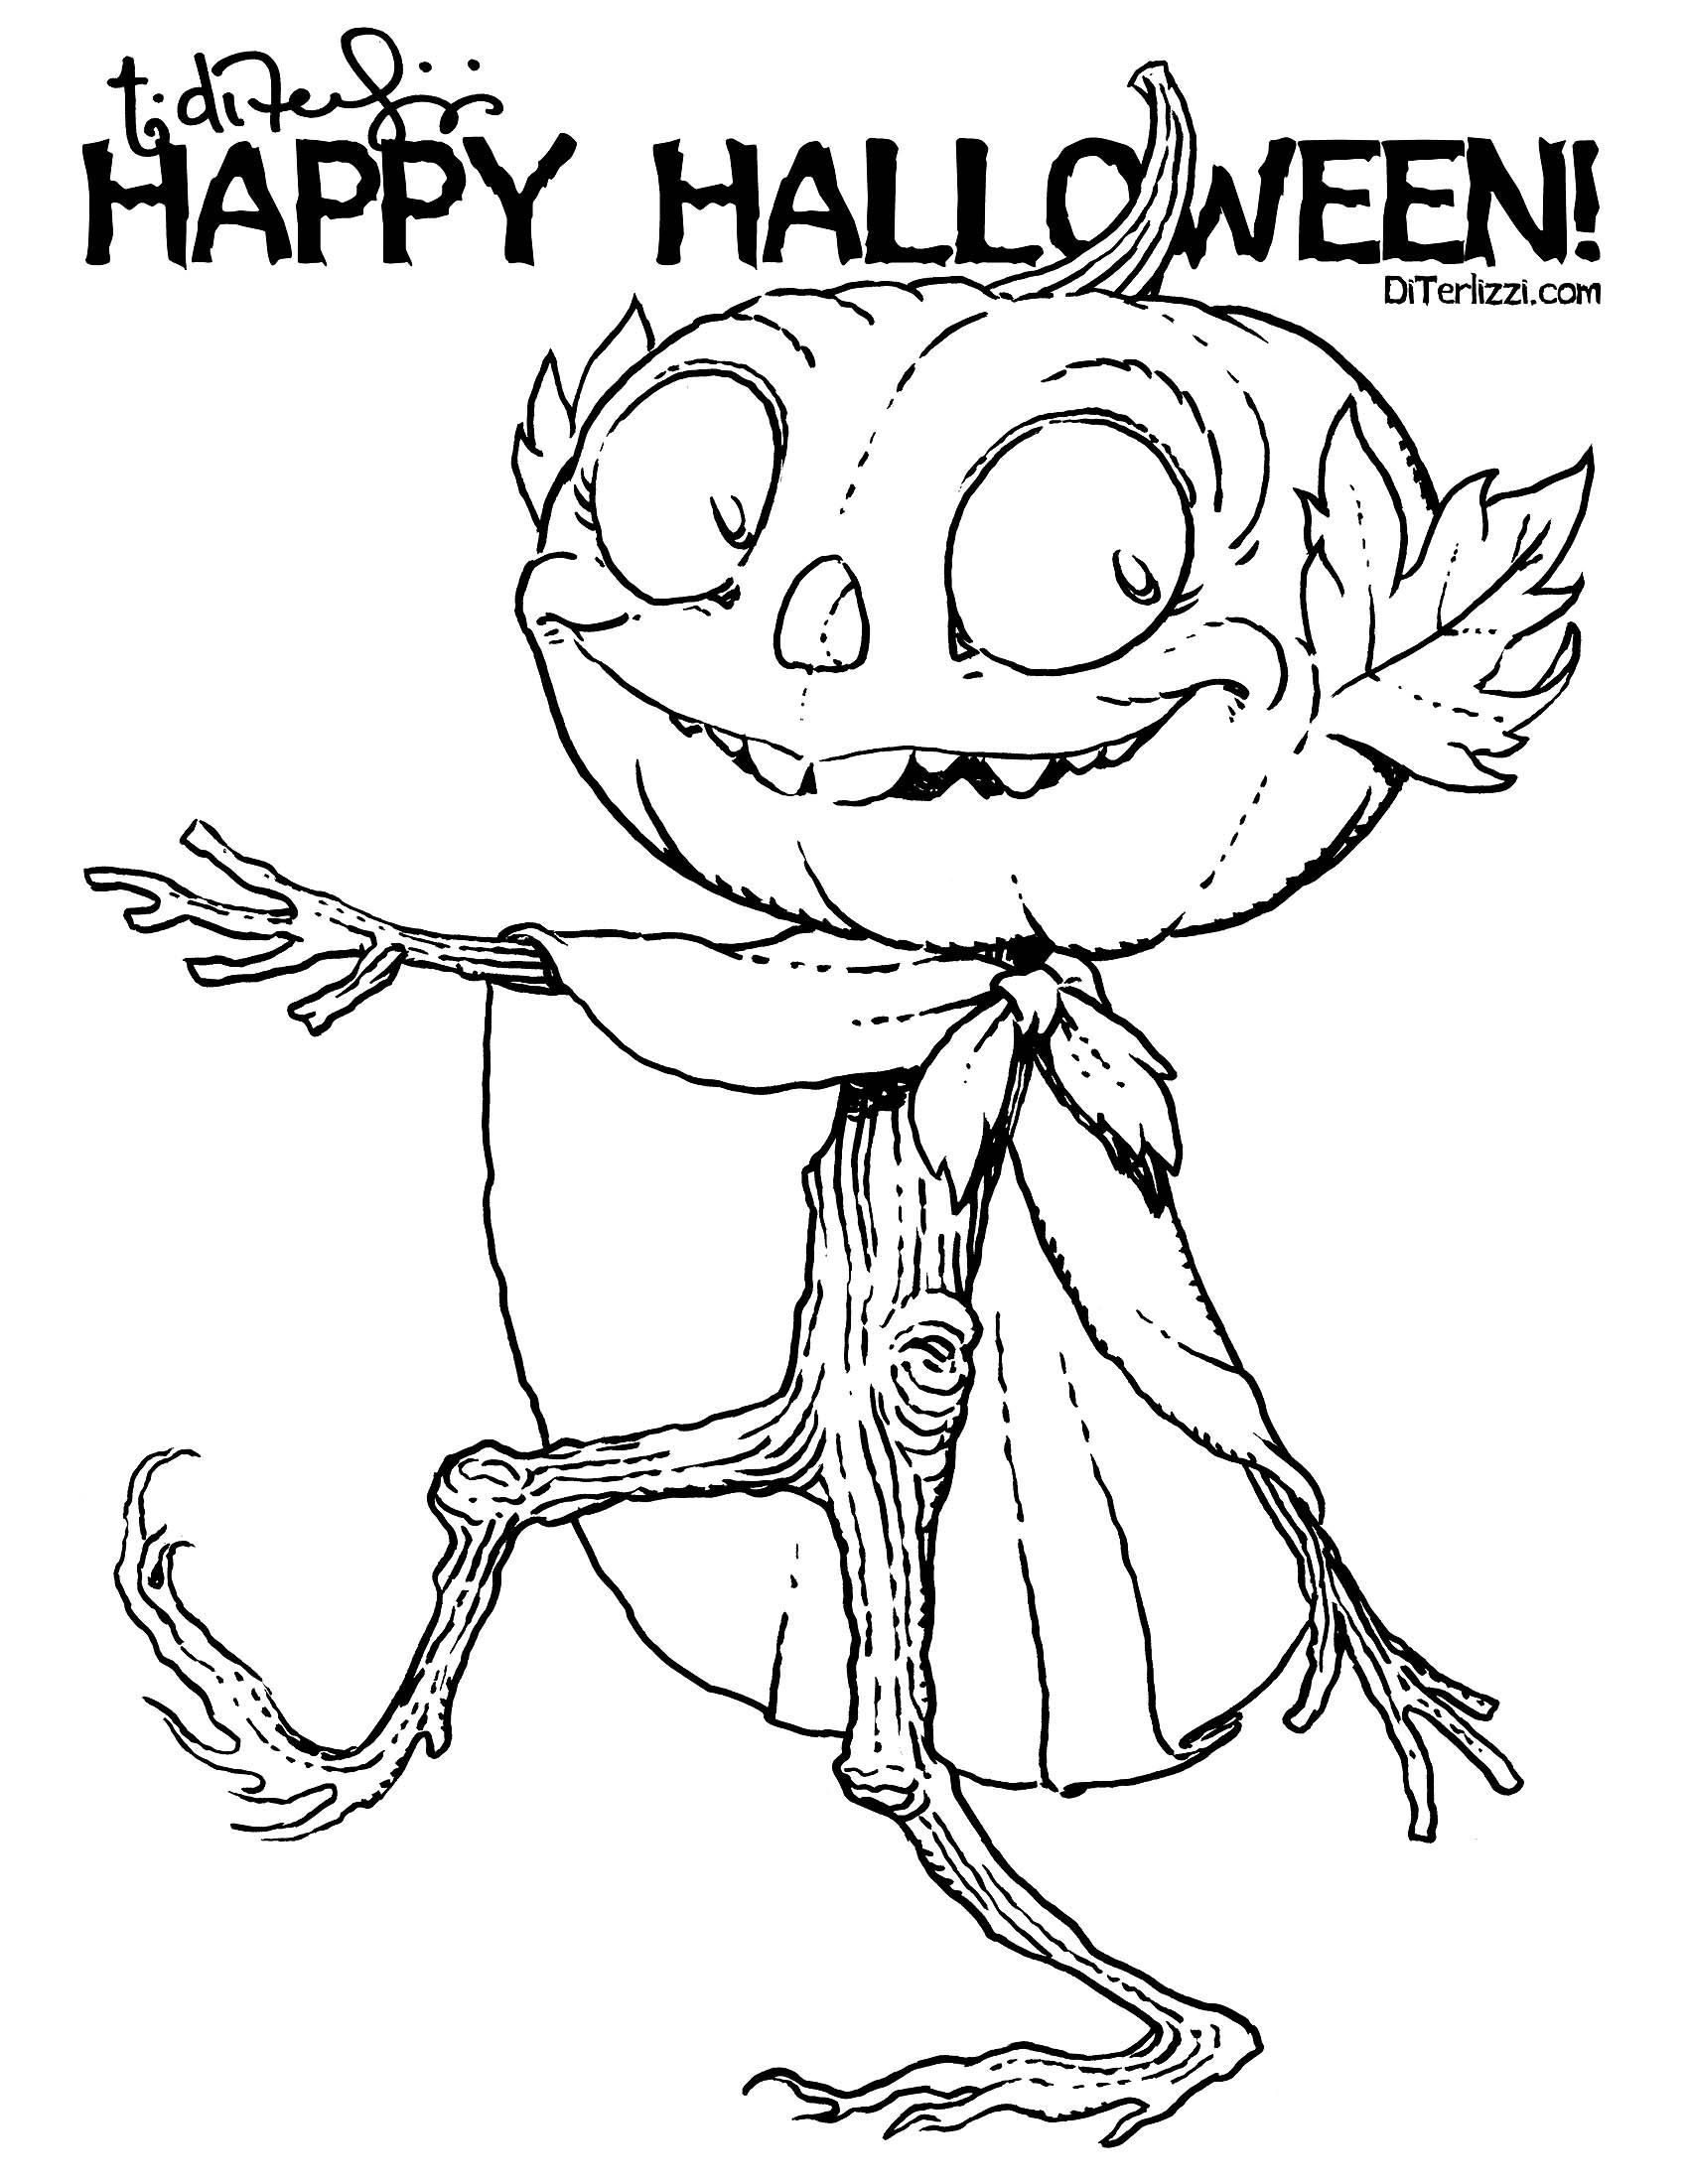 Jack-o\'-Lantern Parade, free downloadable printables from Tony ...